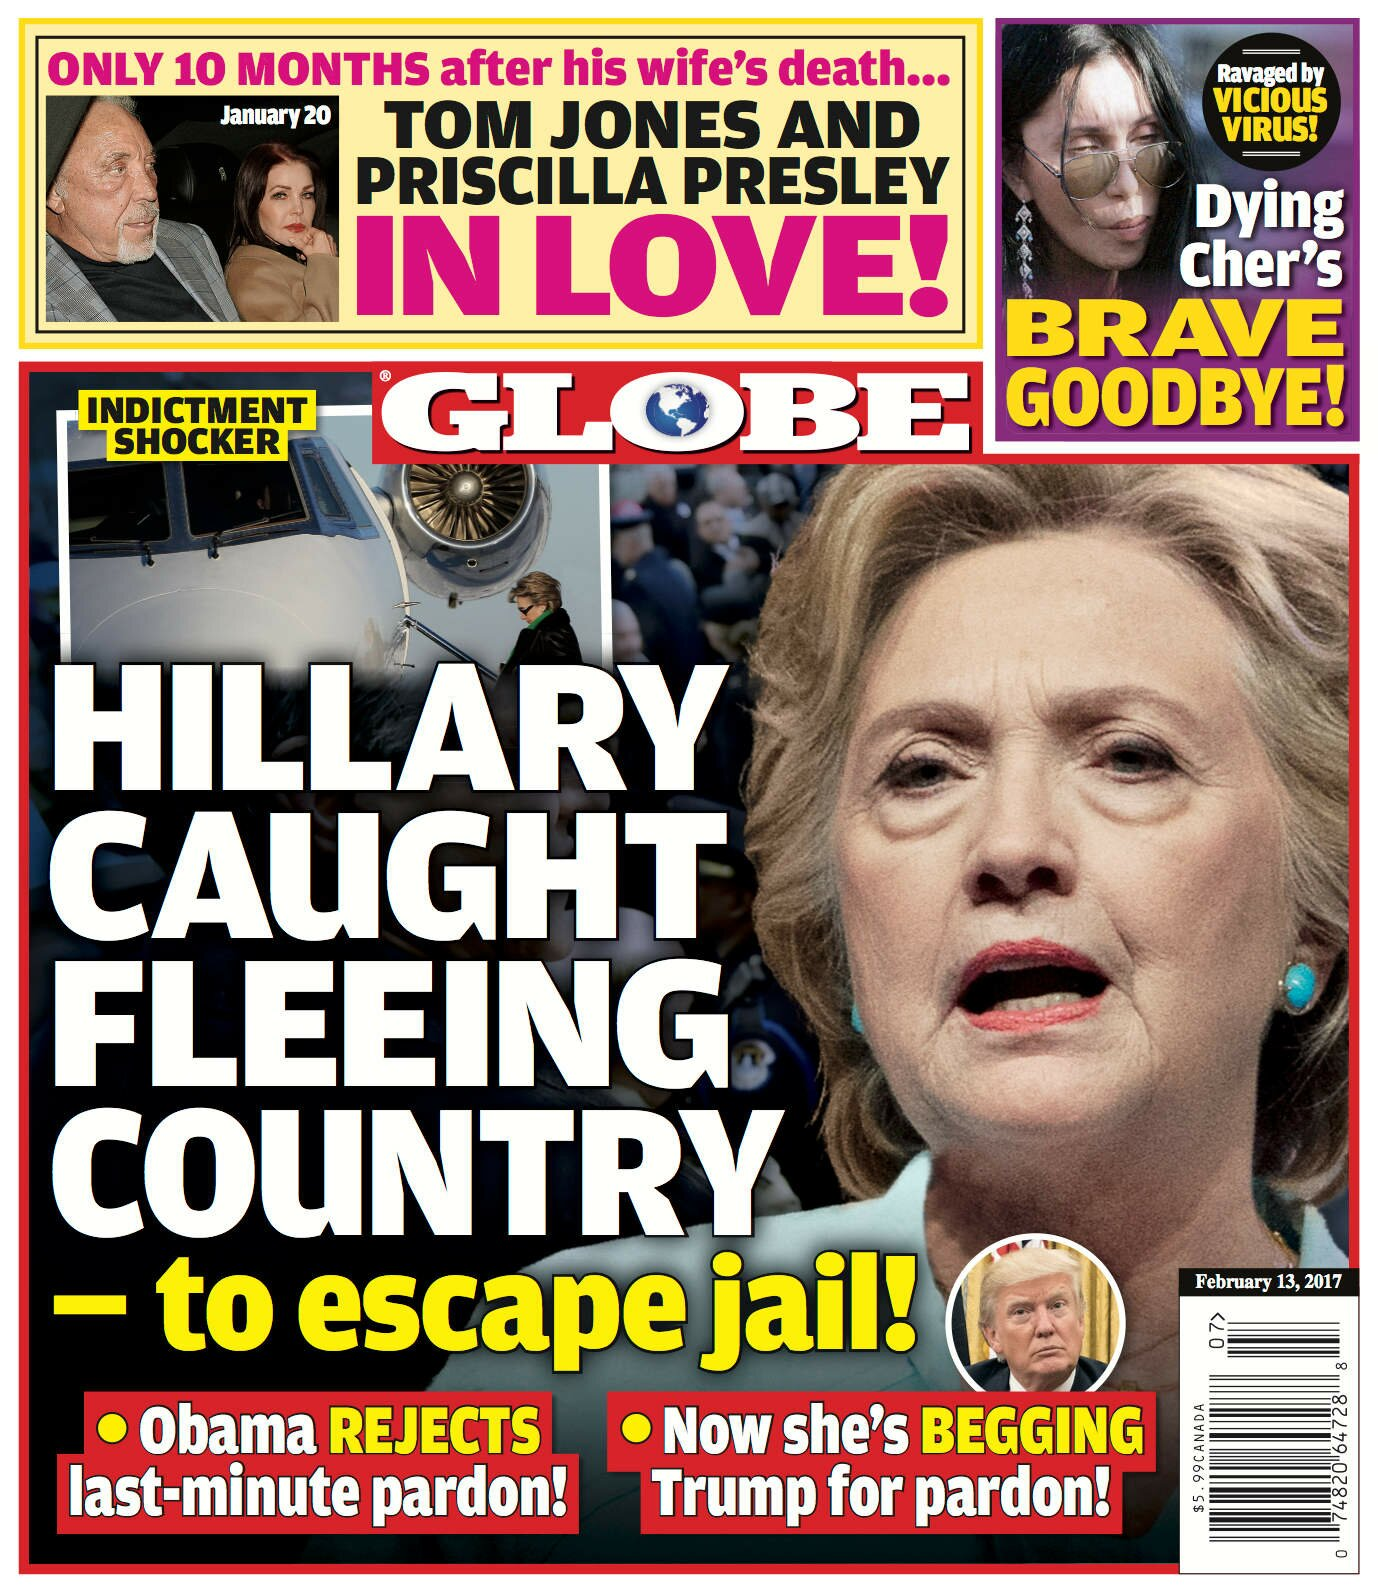 https://i2.wp.com/n8waechter.info/wp-content/uploads/2017/02/globe-magazine-clinton-stopped-in-her-tracks.jpg